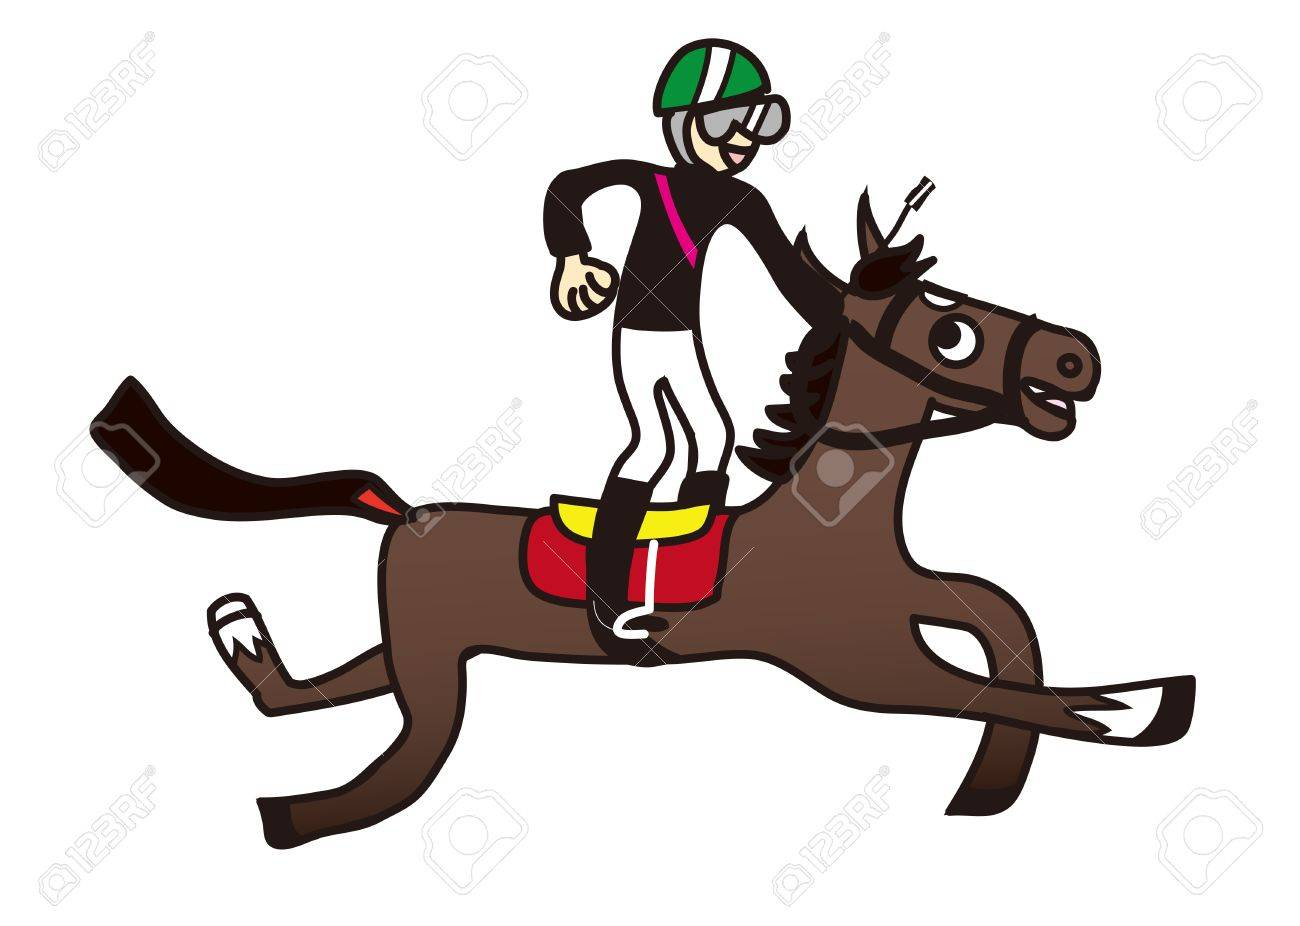 Illustration of a horse and jockey racing Stock Vector - 16029278